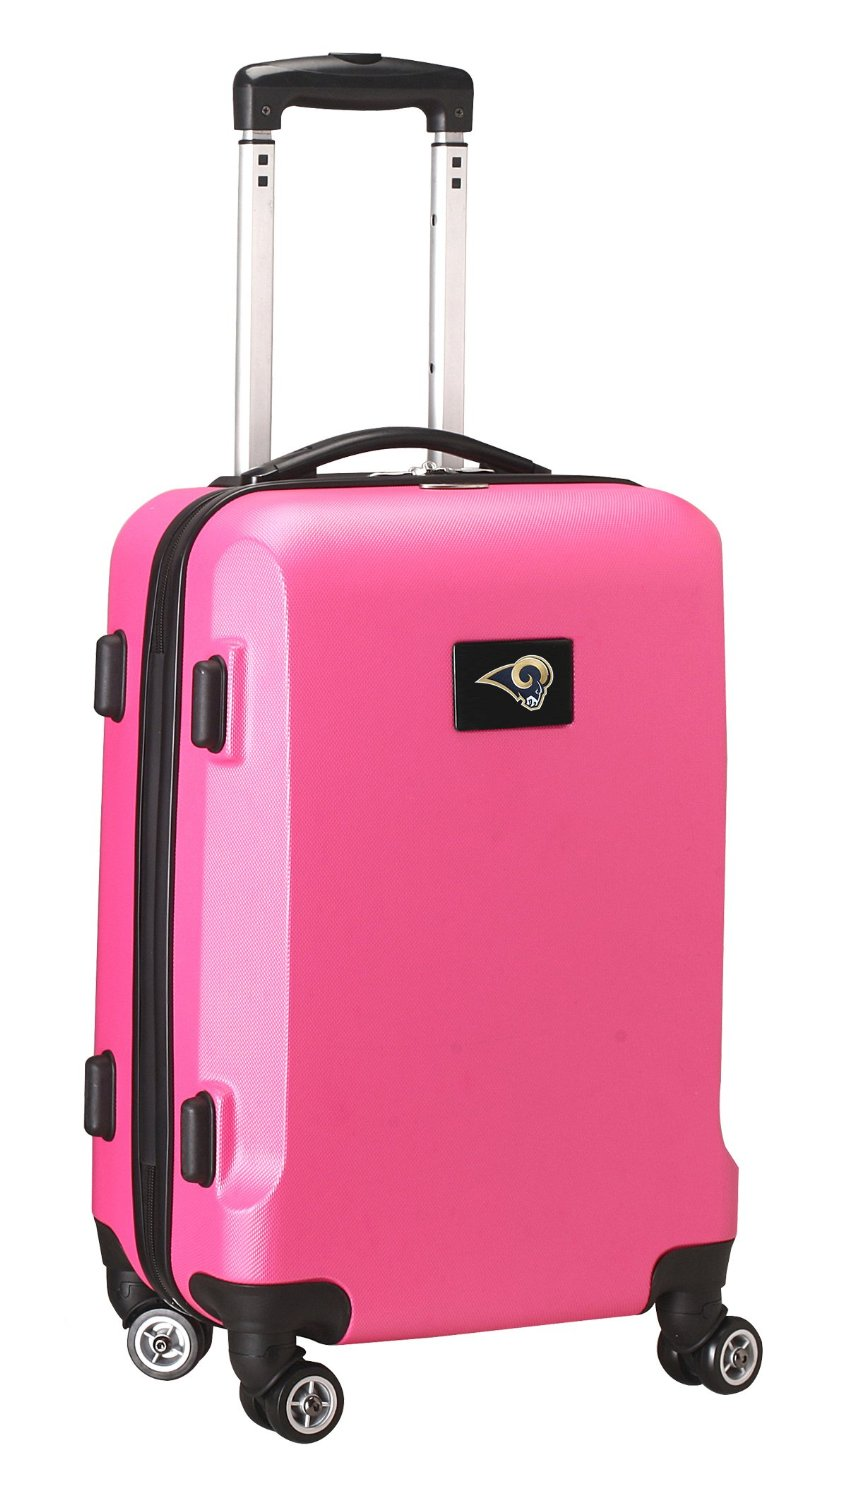 NFL St. Louis Rams Hardcase Domestic Carry-On Spinner, Pink, 20-Inch